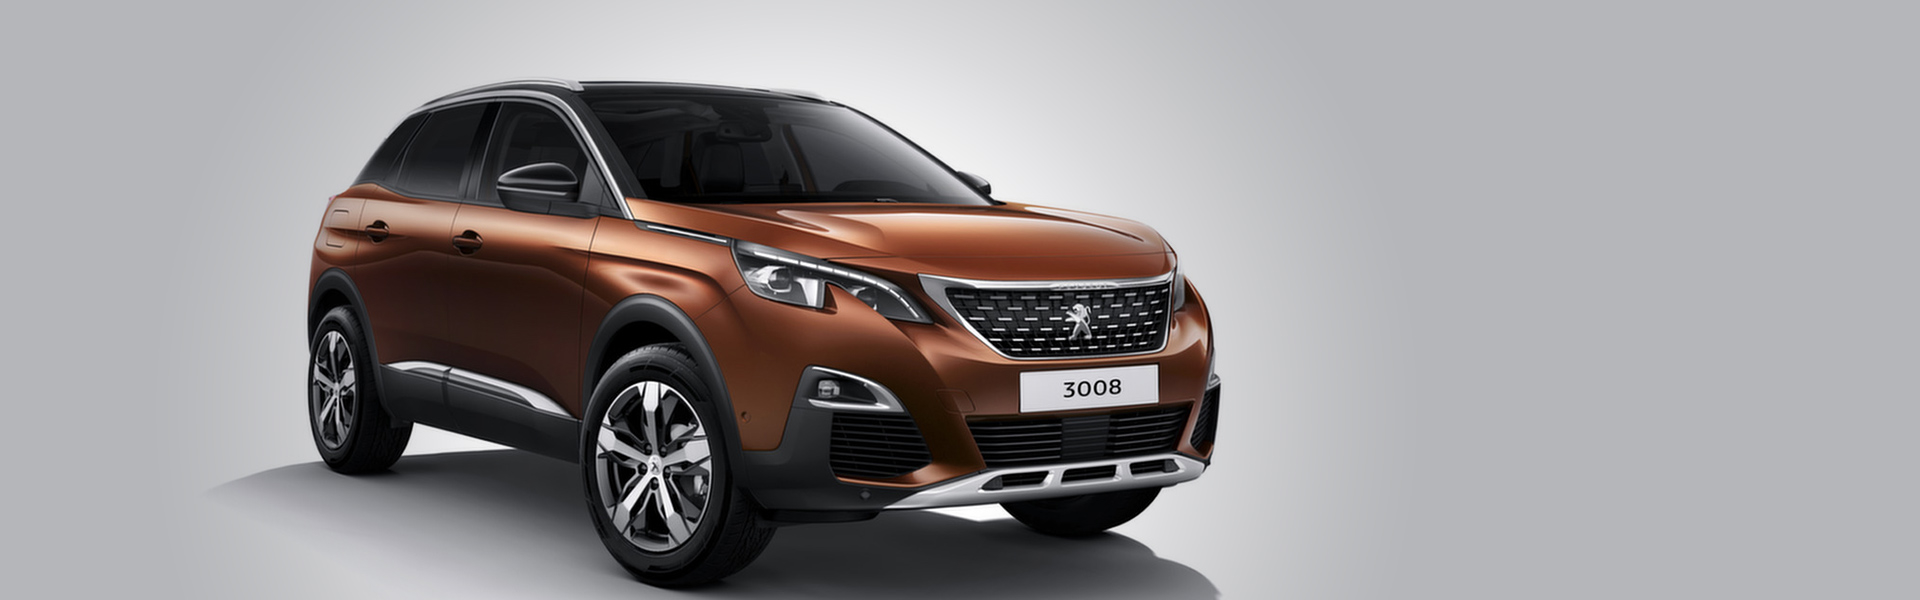 all new 3008